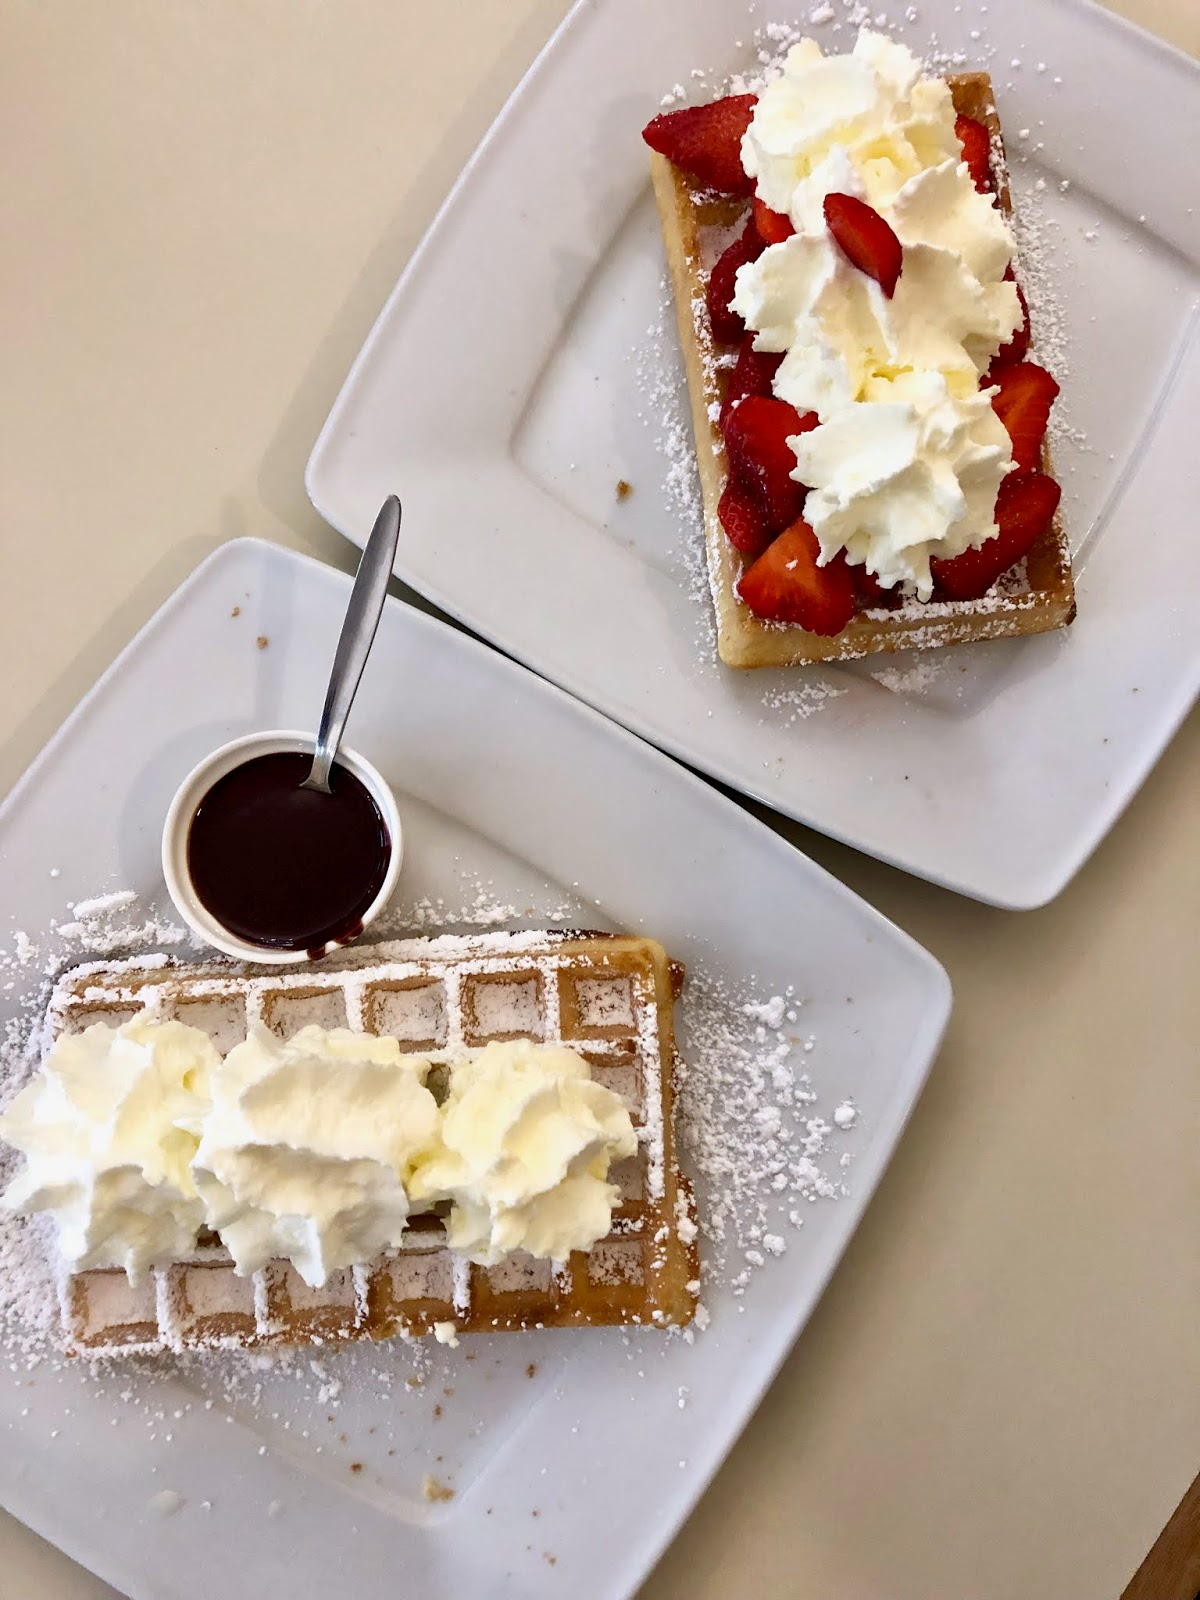 Food blogger Kathleen Harper's Brussels waffles from Mokafé in Belgium